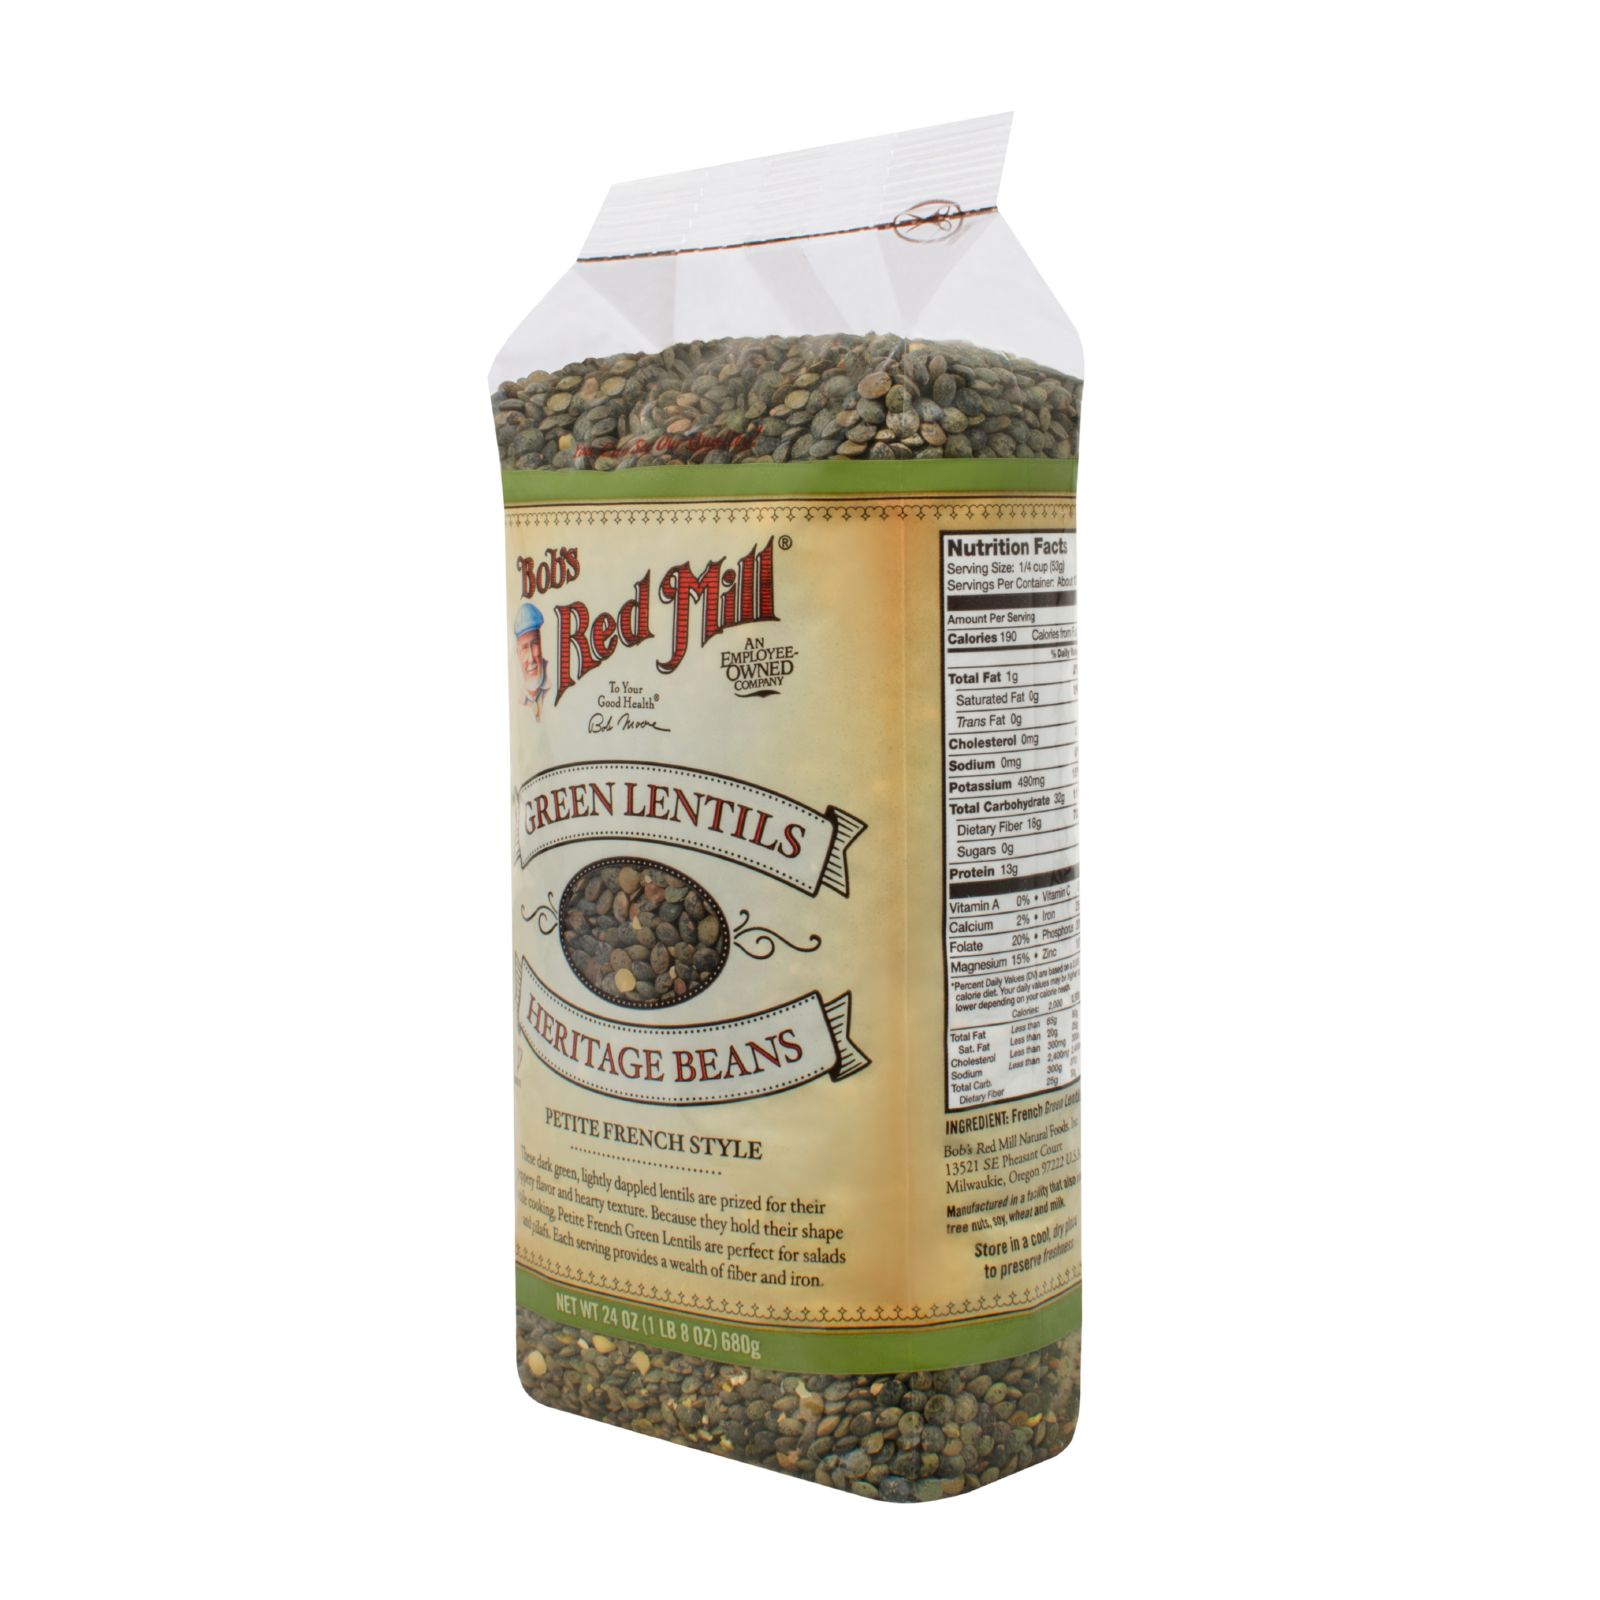 Bob's Red Mill Petite French Green Lentils 24 oz Case of 4 by